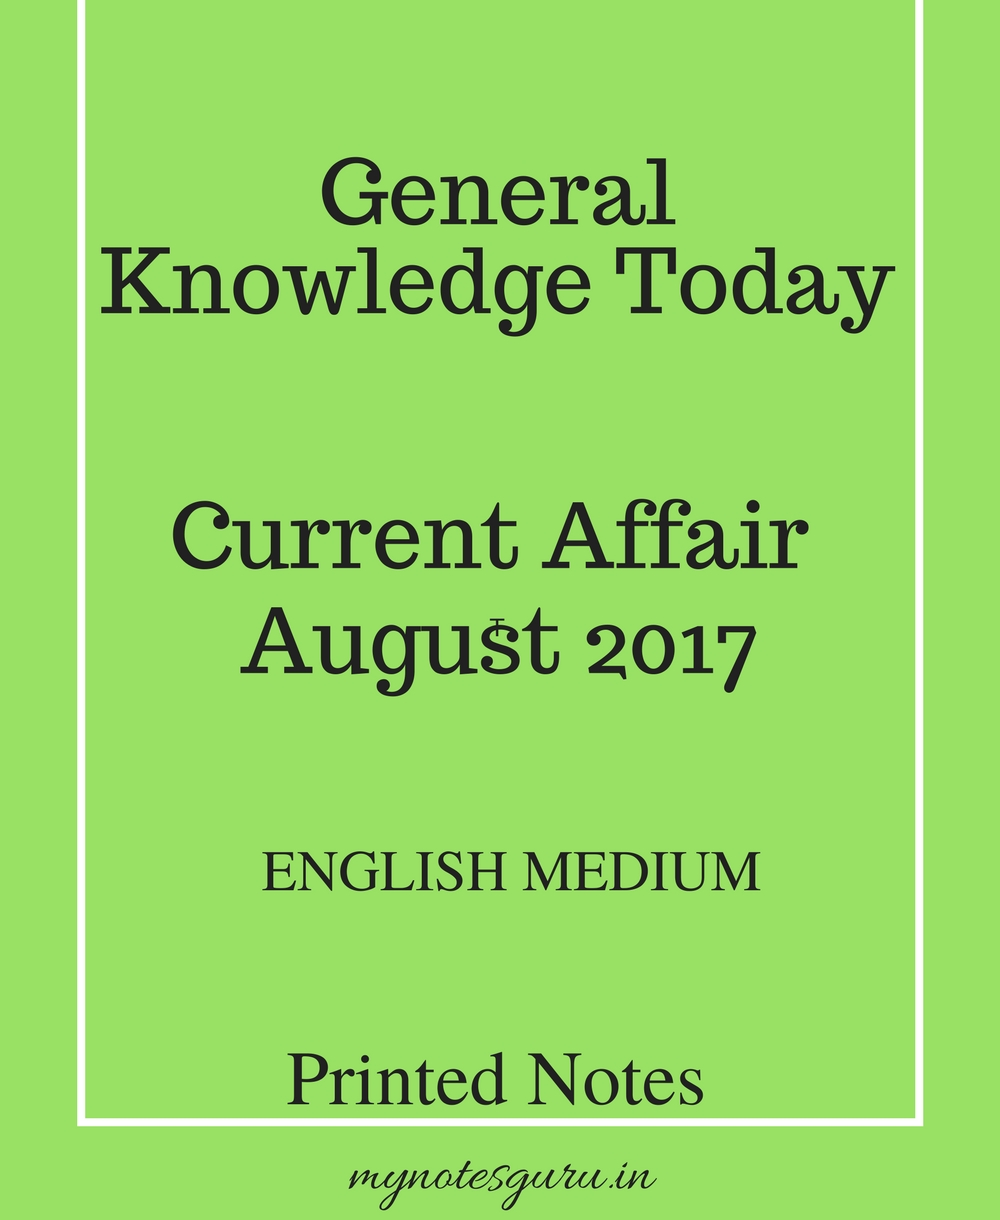 General Knowledge Today - Current Affair - August 2017 - English Medium -  Printed Material